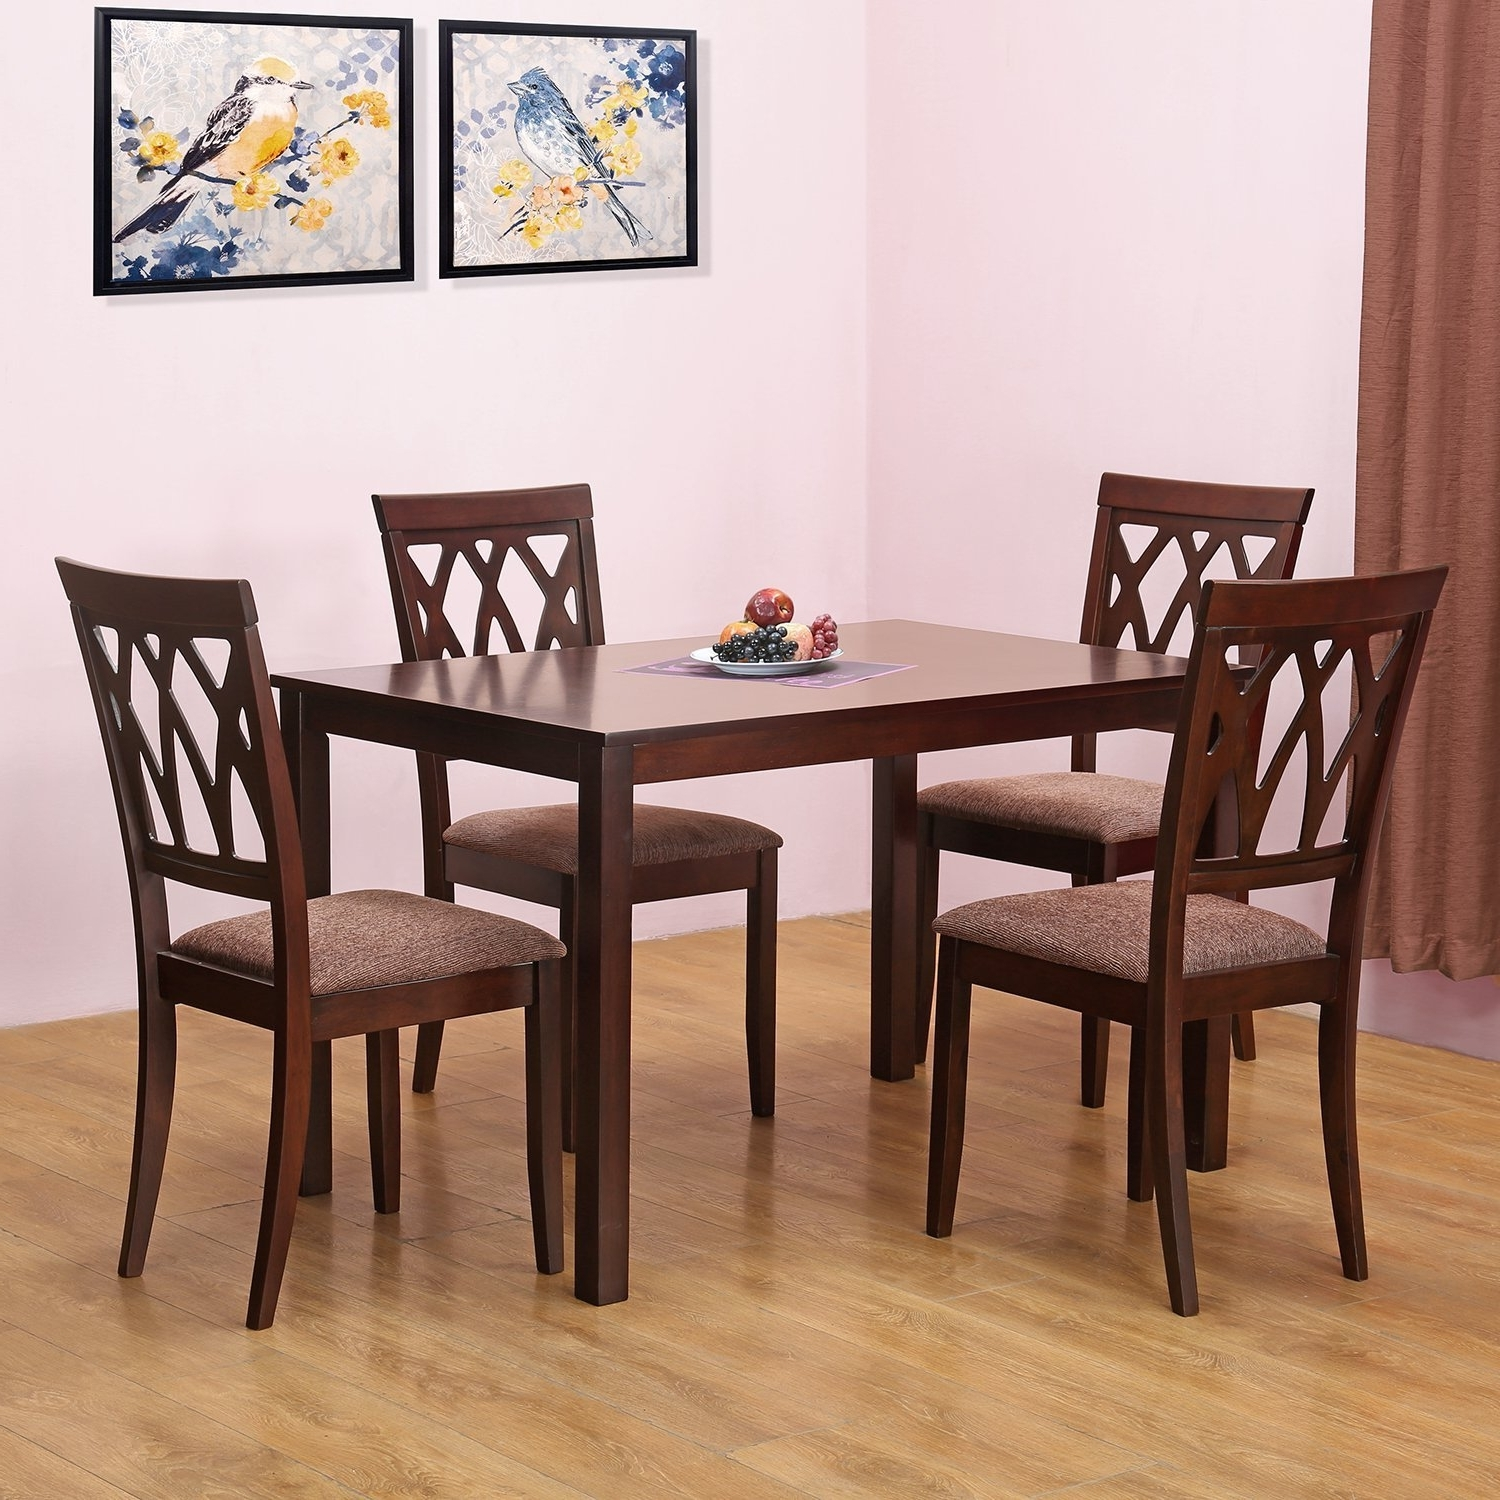 Favorite Cheap Dining Tables Intended For Dining Room Table Prices Cheap Table And Chair # (View 19 of 25)